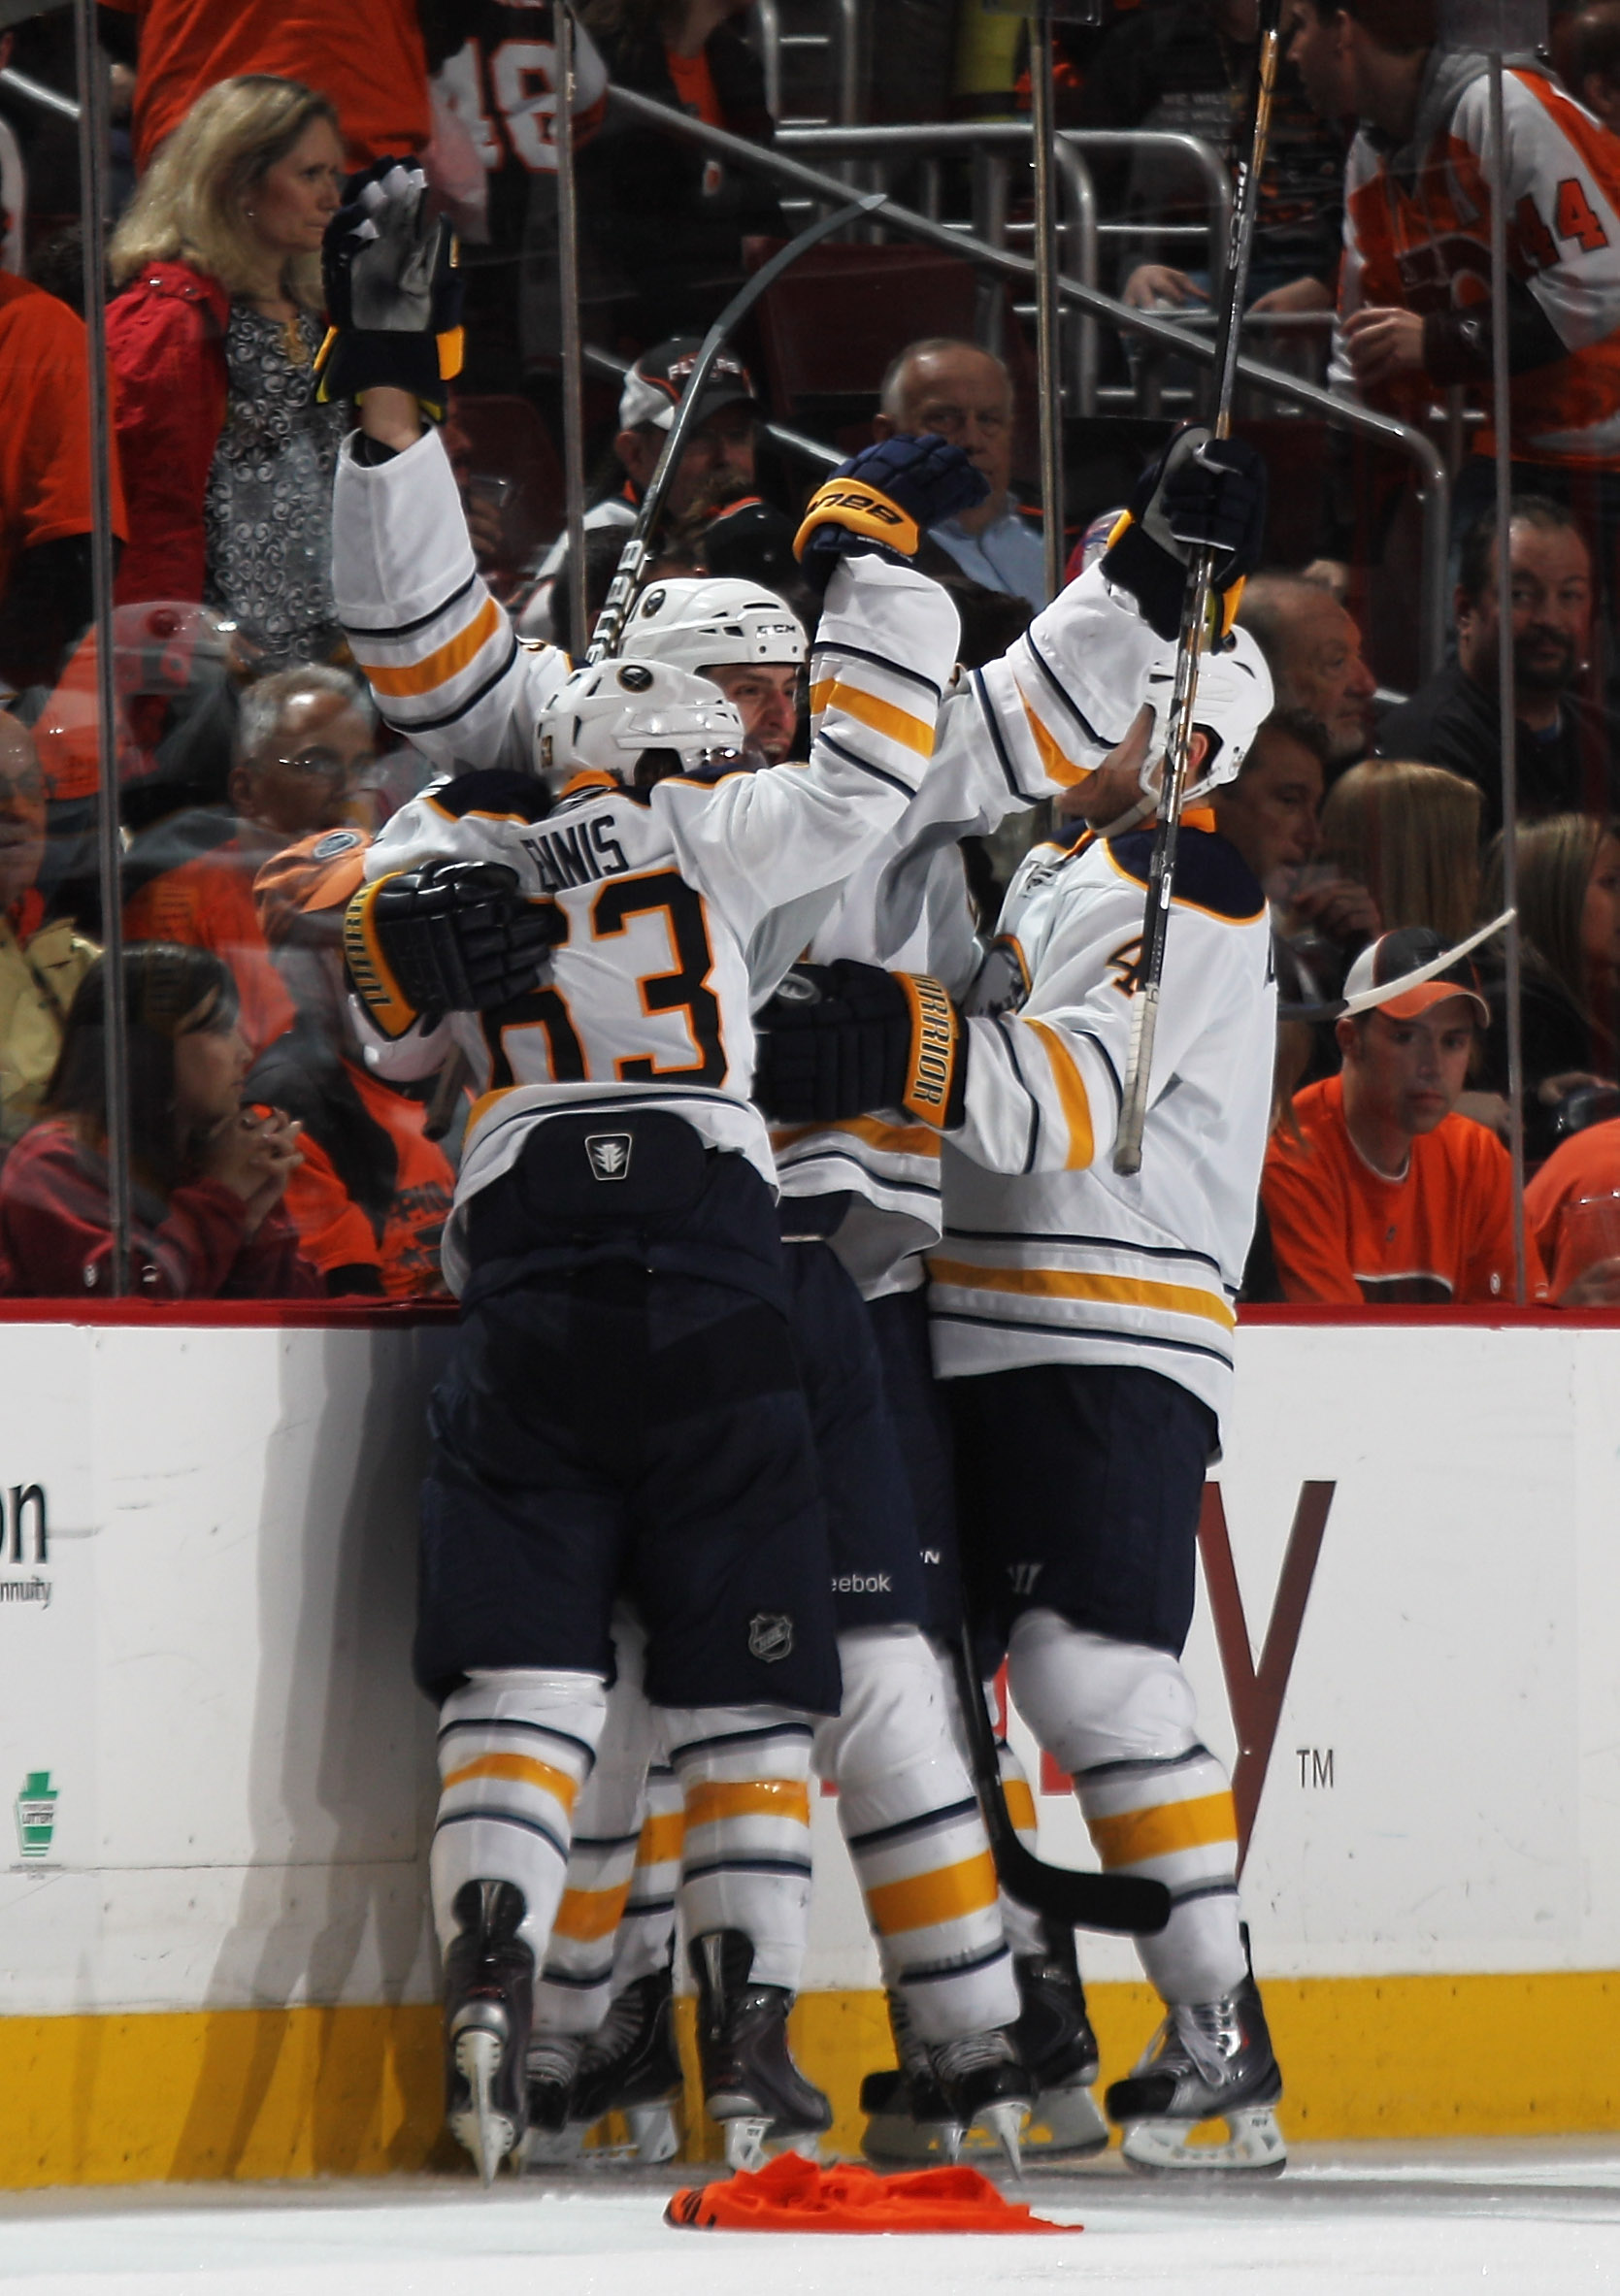 PHILADELPHIA, PA - APRIL 22: Tyler Ennis #63 of the Buffalo Sabres celebrates with teammates after scoring the game winning goal in overtime in Game Five of the Eastern Conference Quarterfinals during the 2011 NHL Stanley Cup Playoffs at Wells Fargo Center on April 22, 2011 in Philadelphia, Pennsylvania. The Buffalo Sabres defeated the Philadelphia Flyers 4 to 3. (Photo by Bruce Bennett/Getty Images)